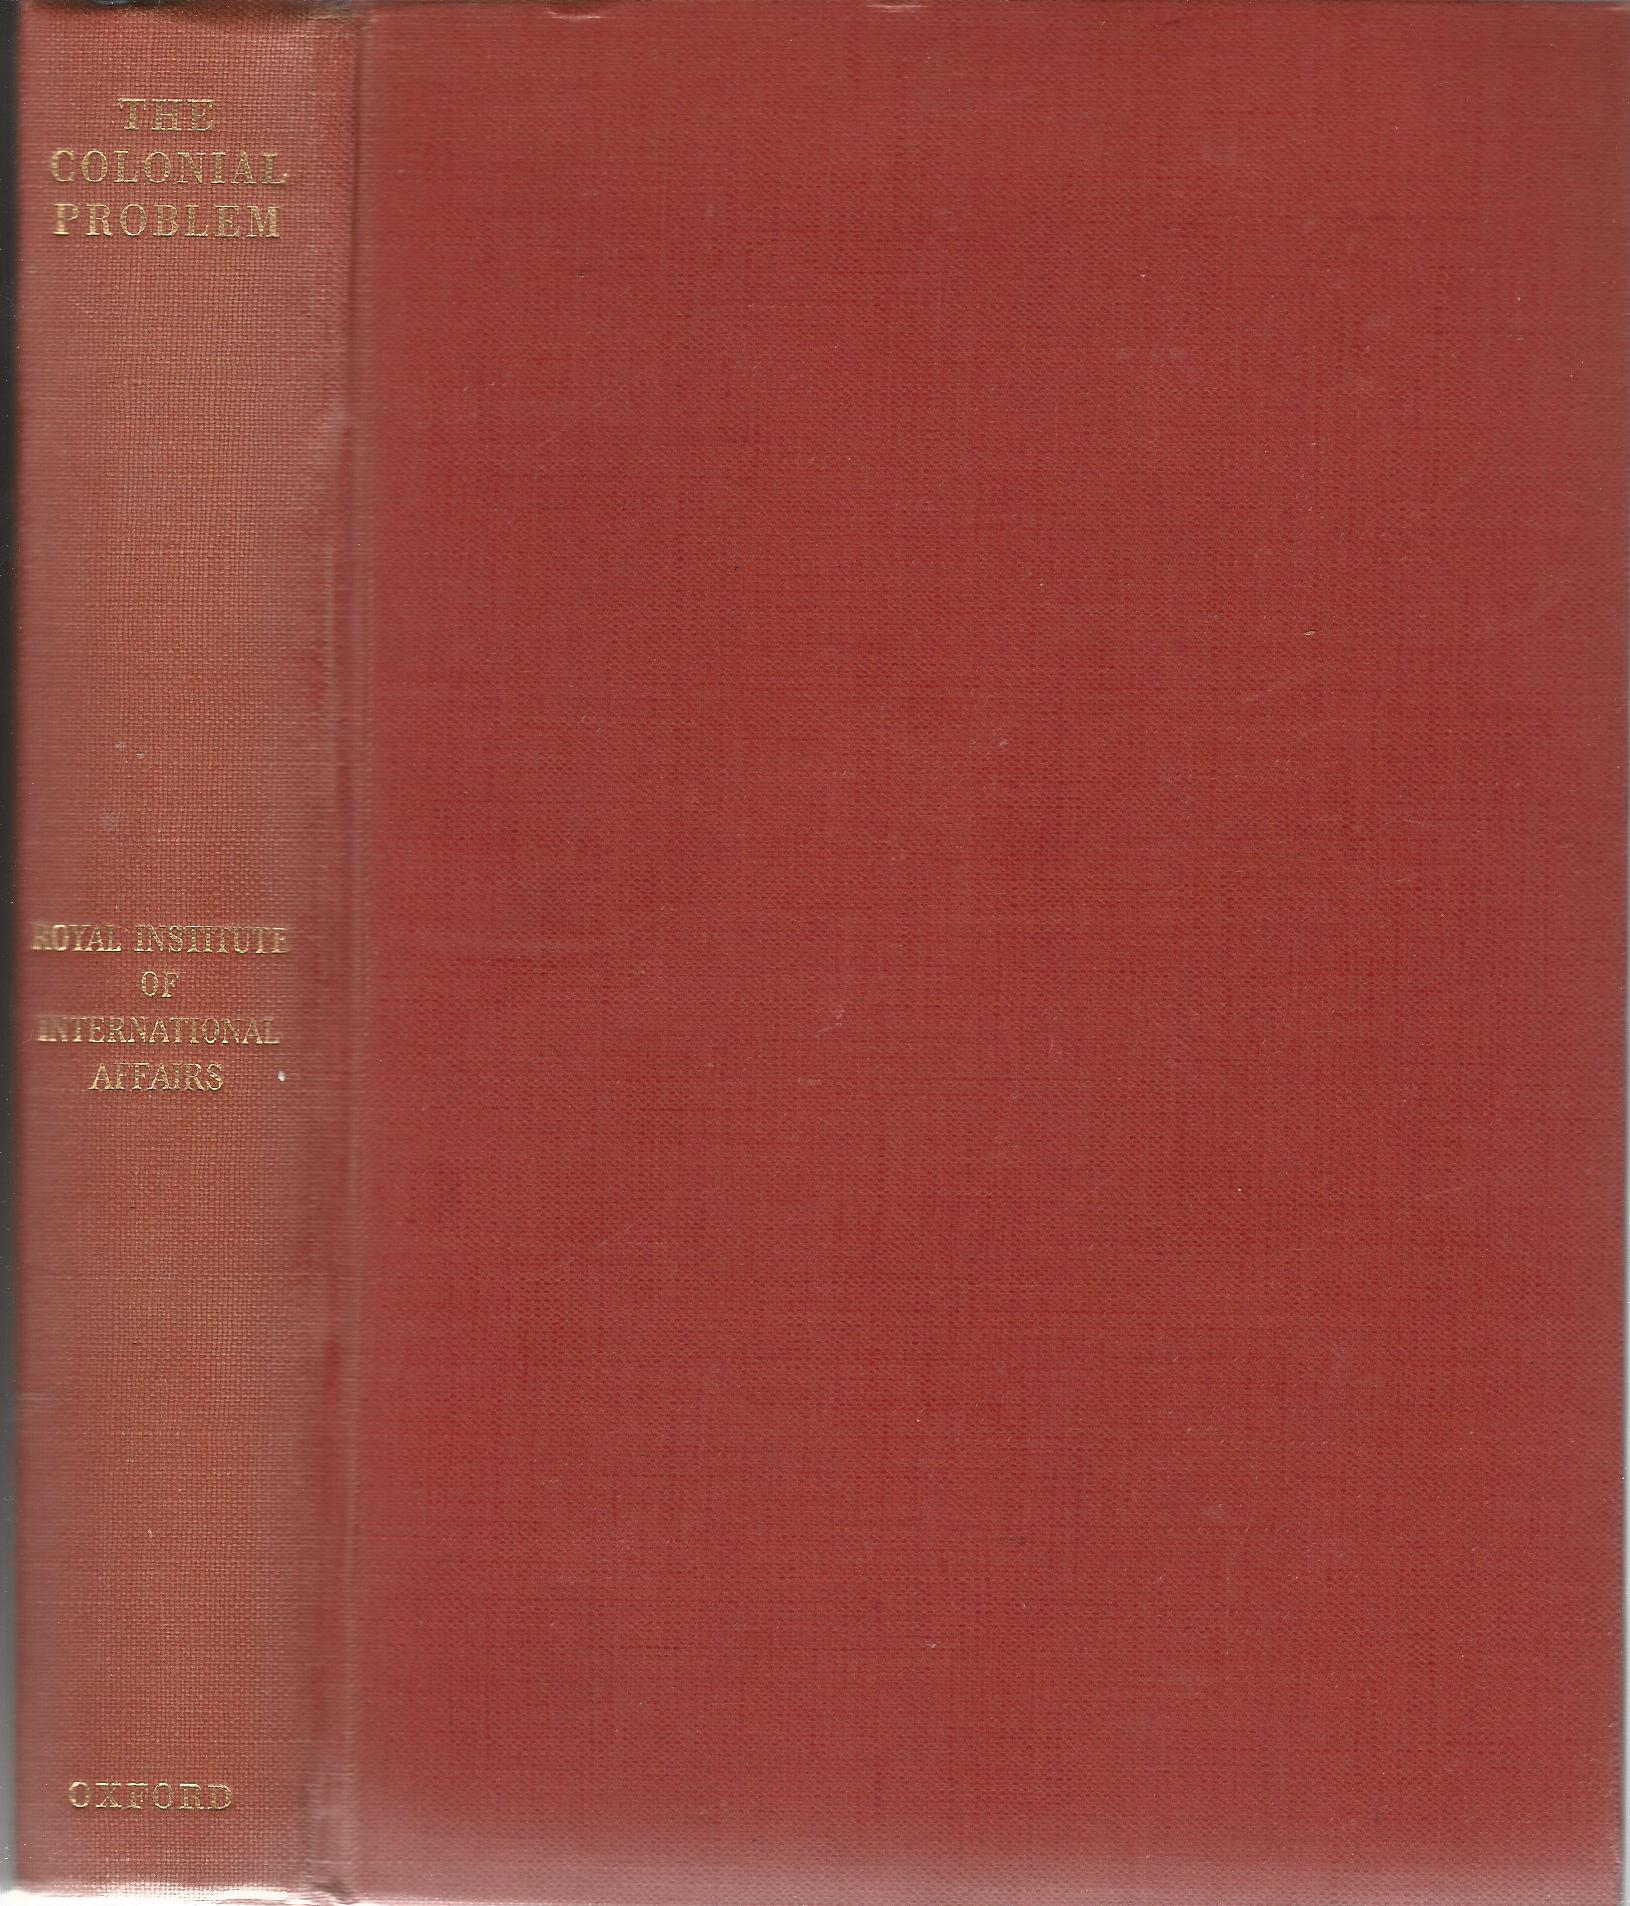 Image for The Colonial Problem: A report by a Study Group of Members of the Royal Institute of International Affairs.